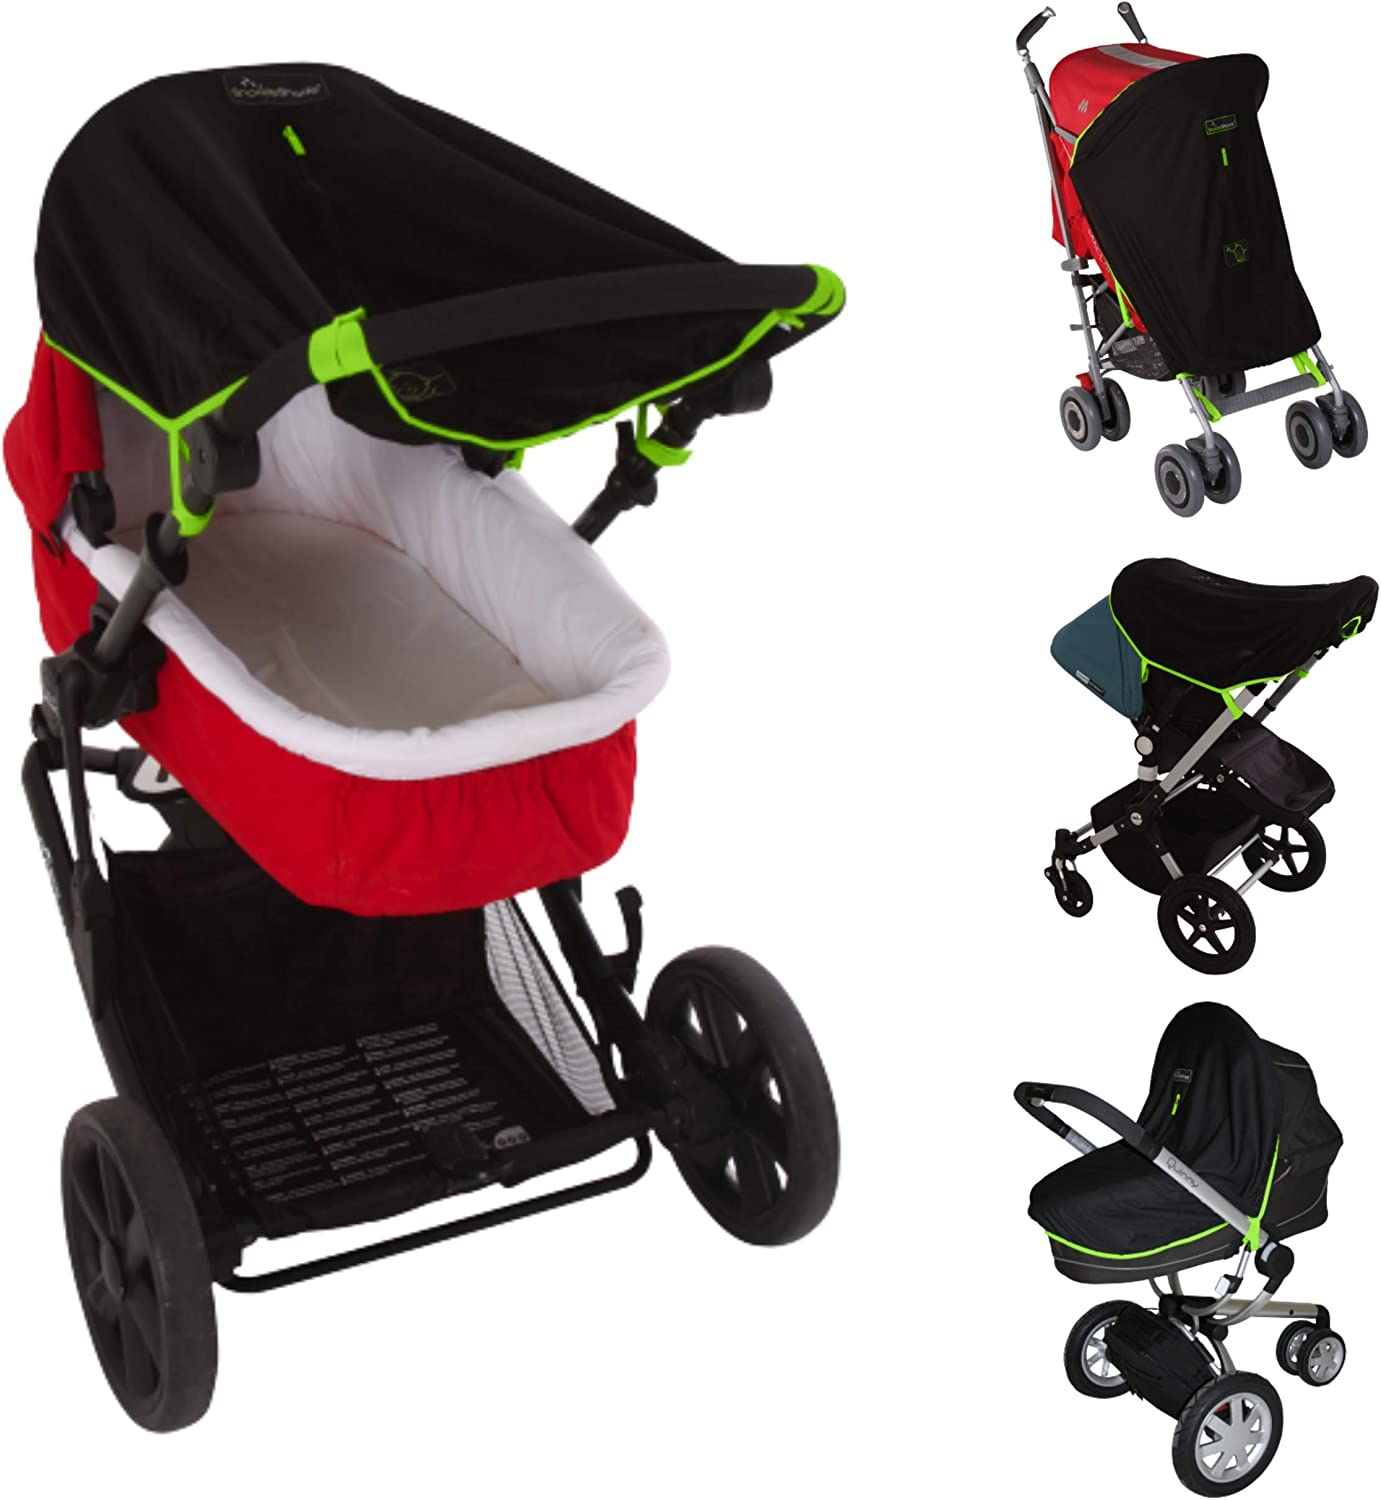 New Black Multi Shade 3 In 1 Sun Canopy Universal Pram//Pushchair //Fast Delivery